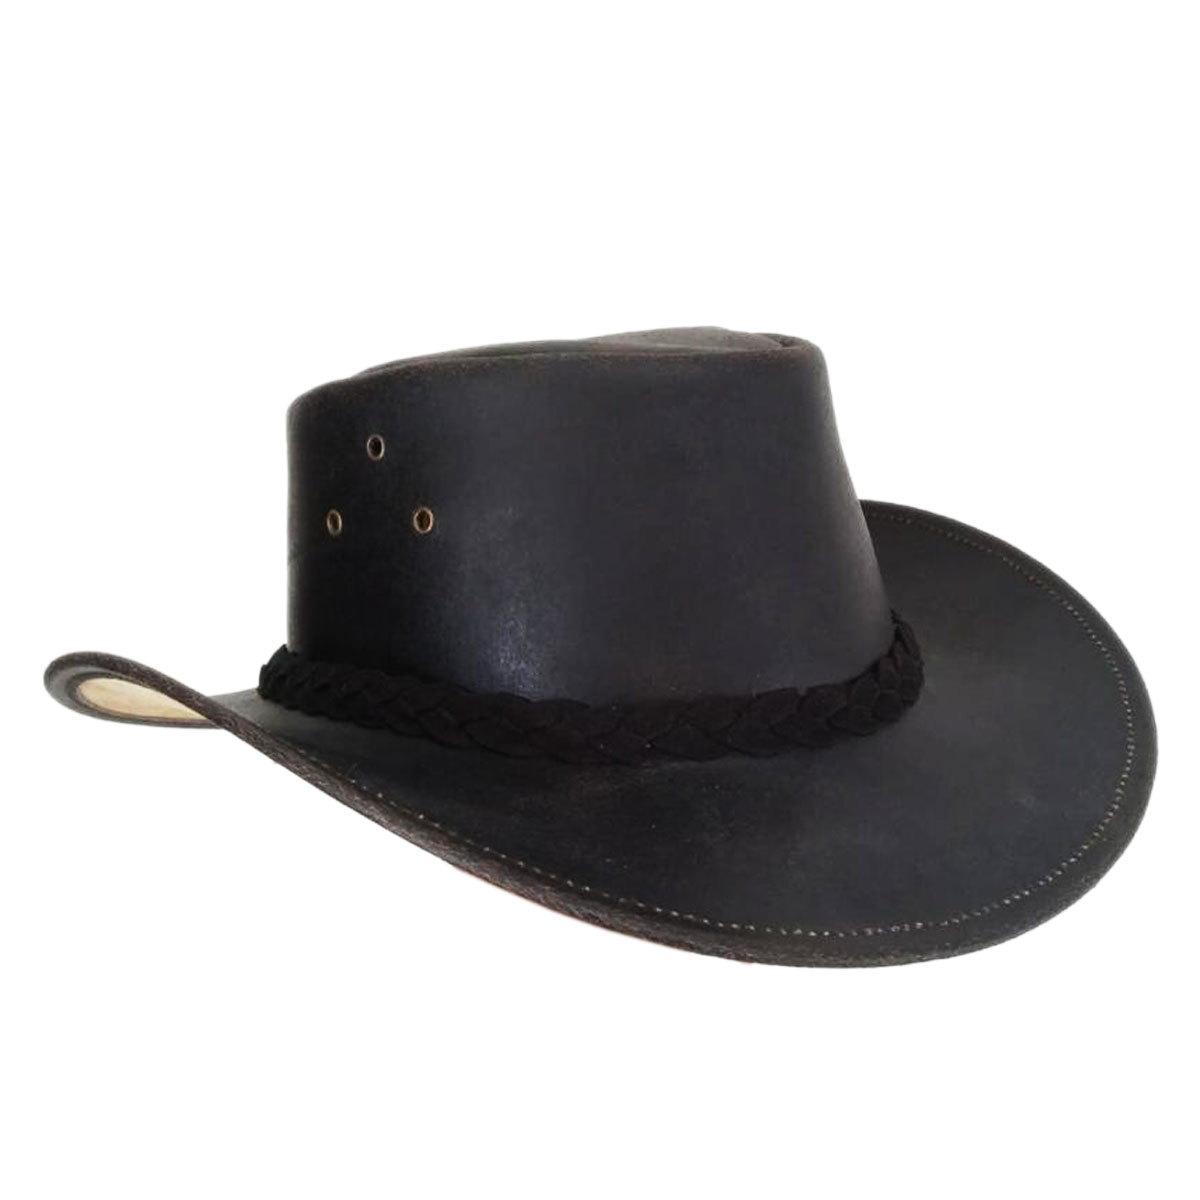 DULL BLACK LEATHER HAT